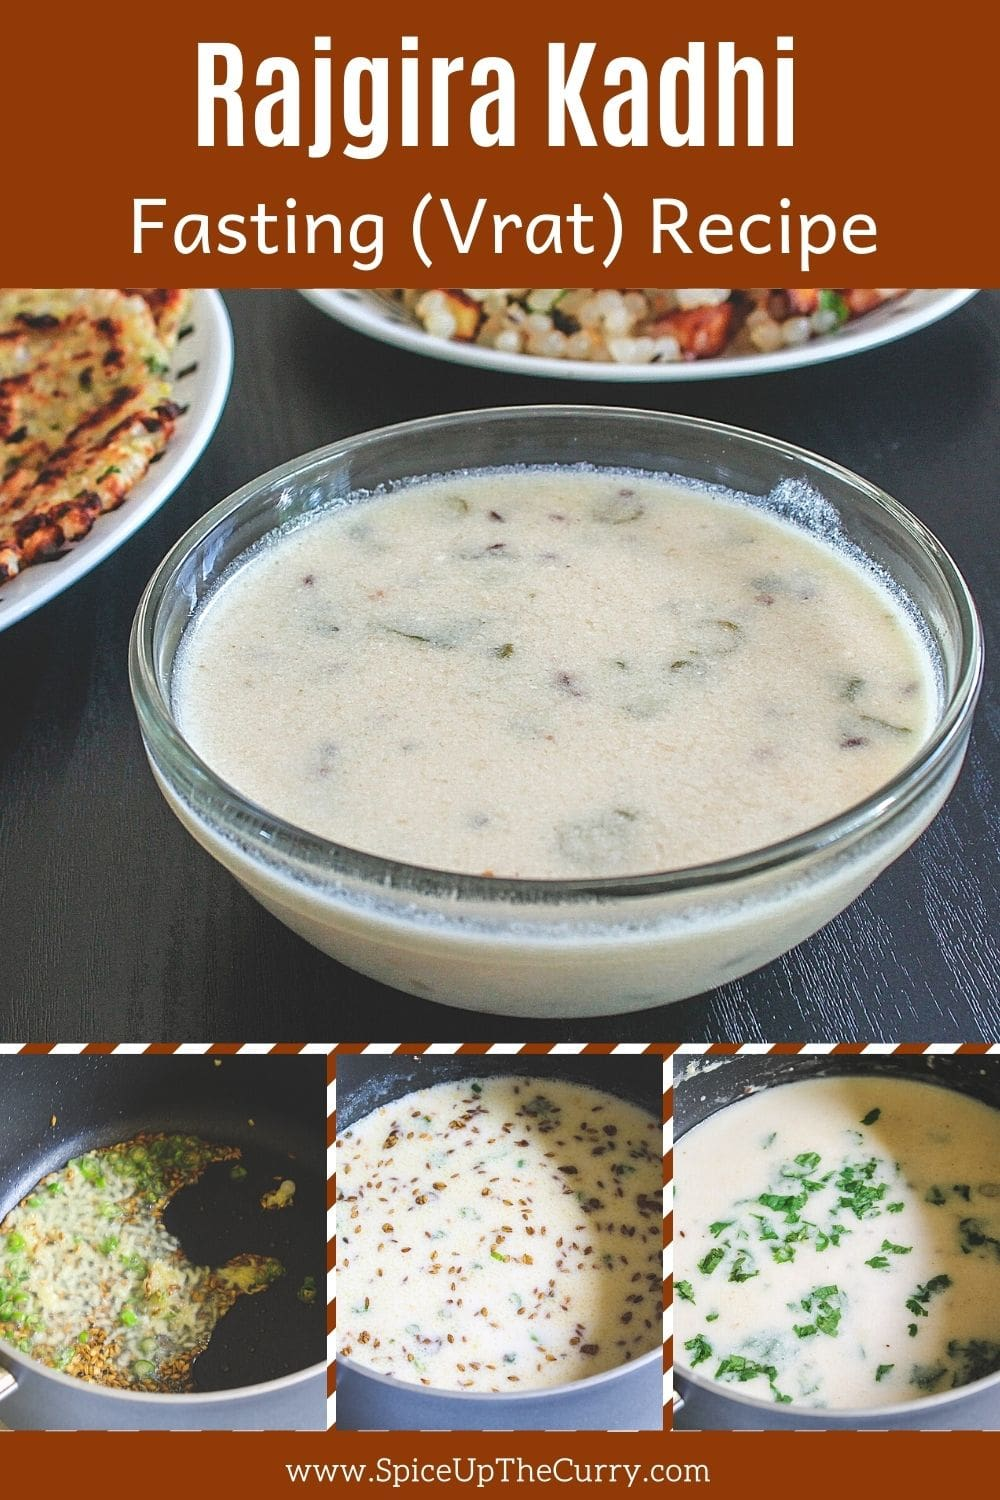 Rajgira kadhi in a bowl with 3 collage of steps at the bottom with text on top of the image for pinterest.